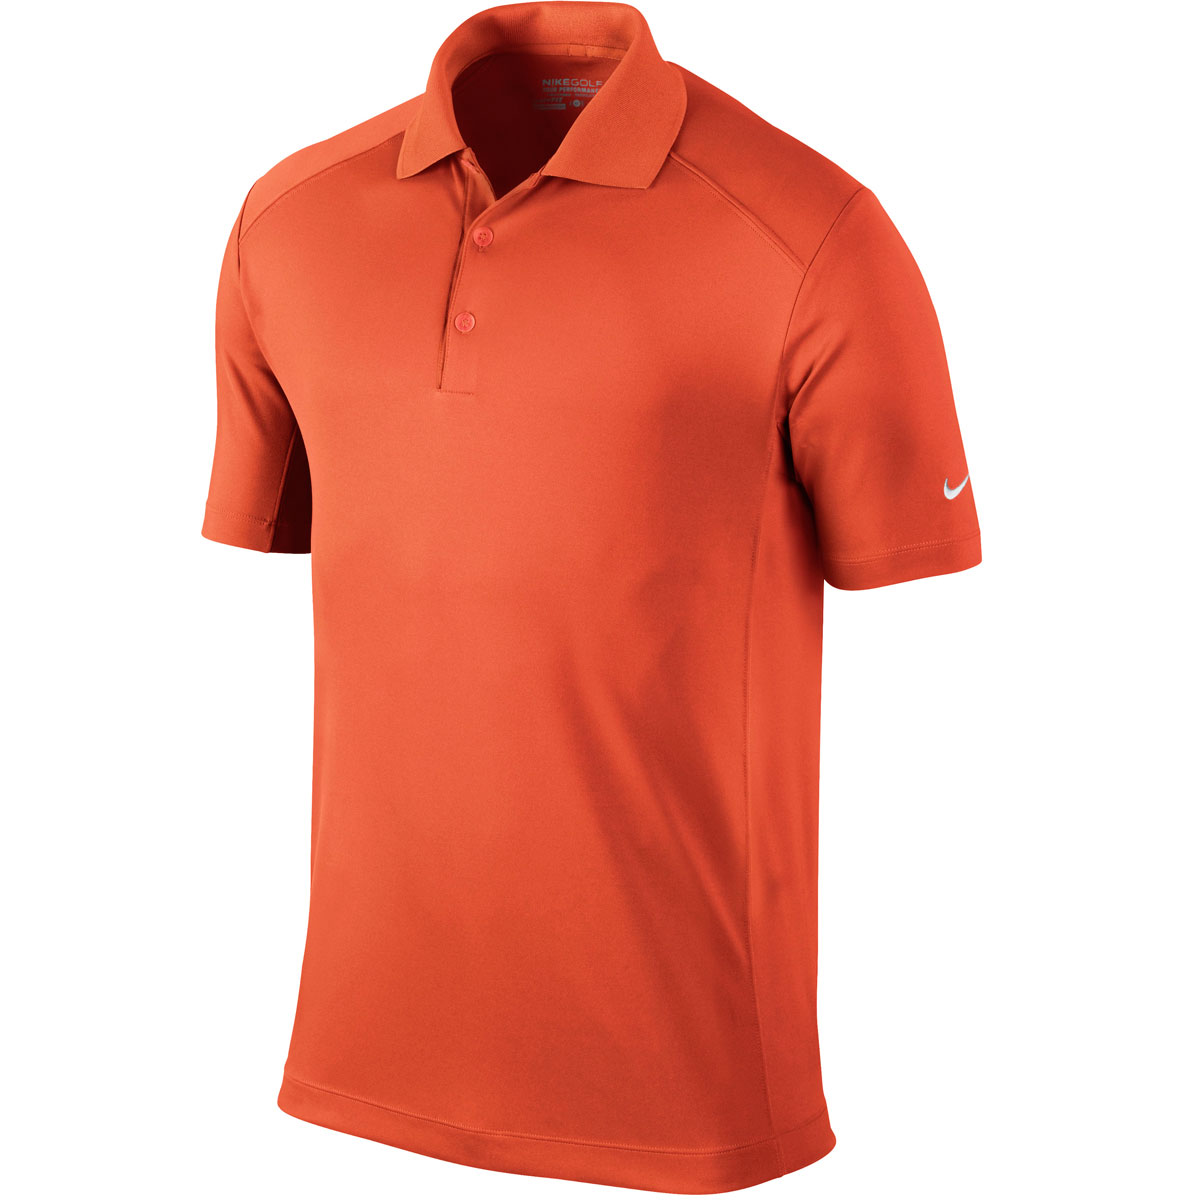 Nike golf 2014 mens dri fit victory left sleeve logo polo for Dri fit polo shirts for boys